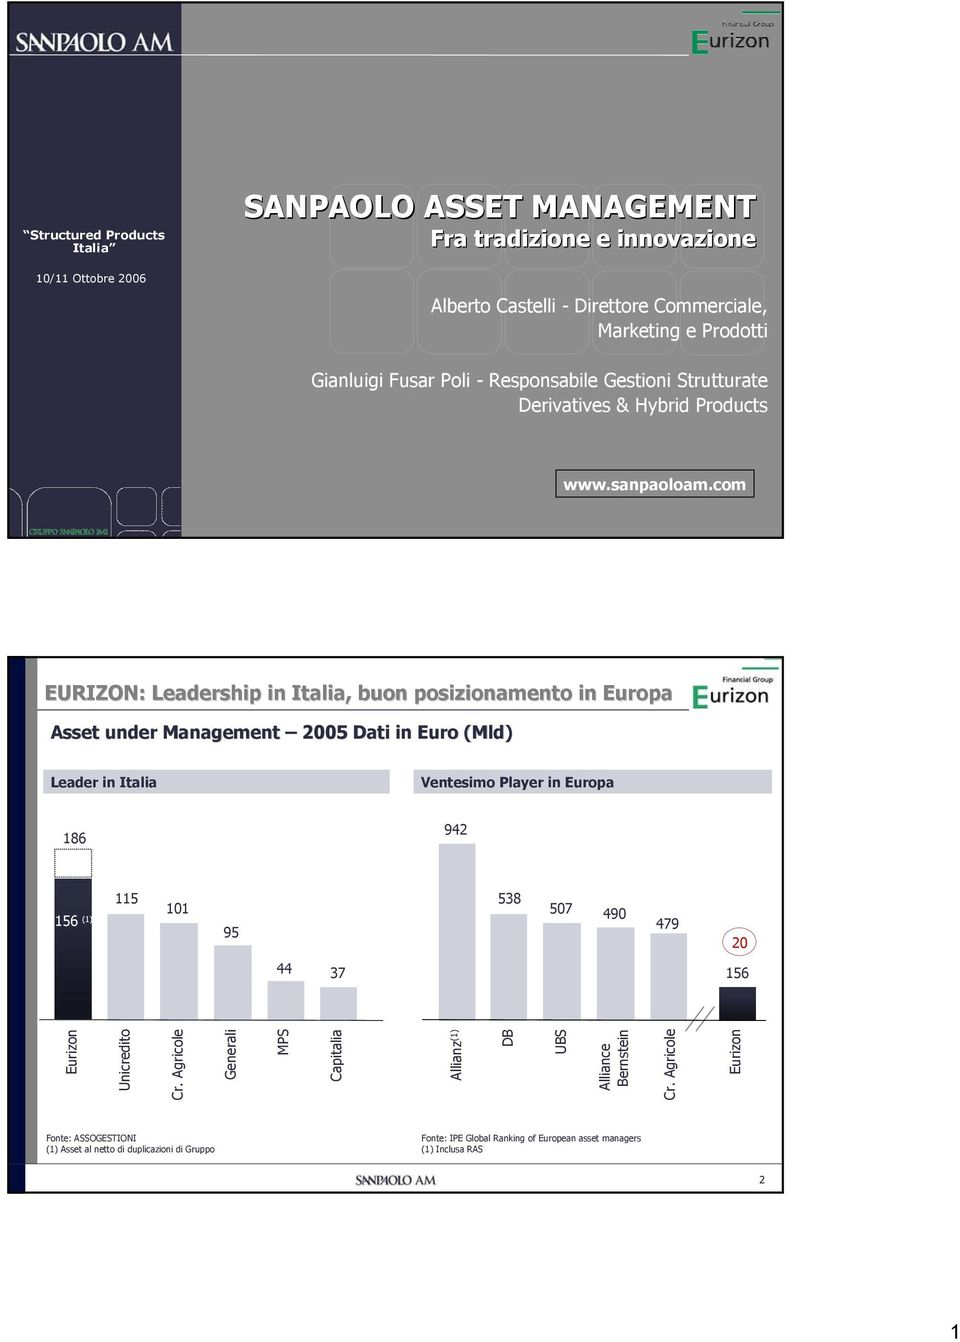 com EURIZON: Leadership in Italia, buon posizionamento in Europa Asset under Management 25 Dati in Euro (Mld) Leader in Italia Ventesimo Player in Europa 186 942 156 (1) 115 11 95